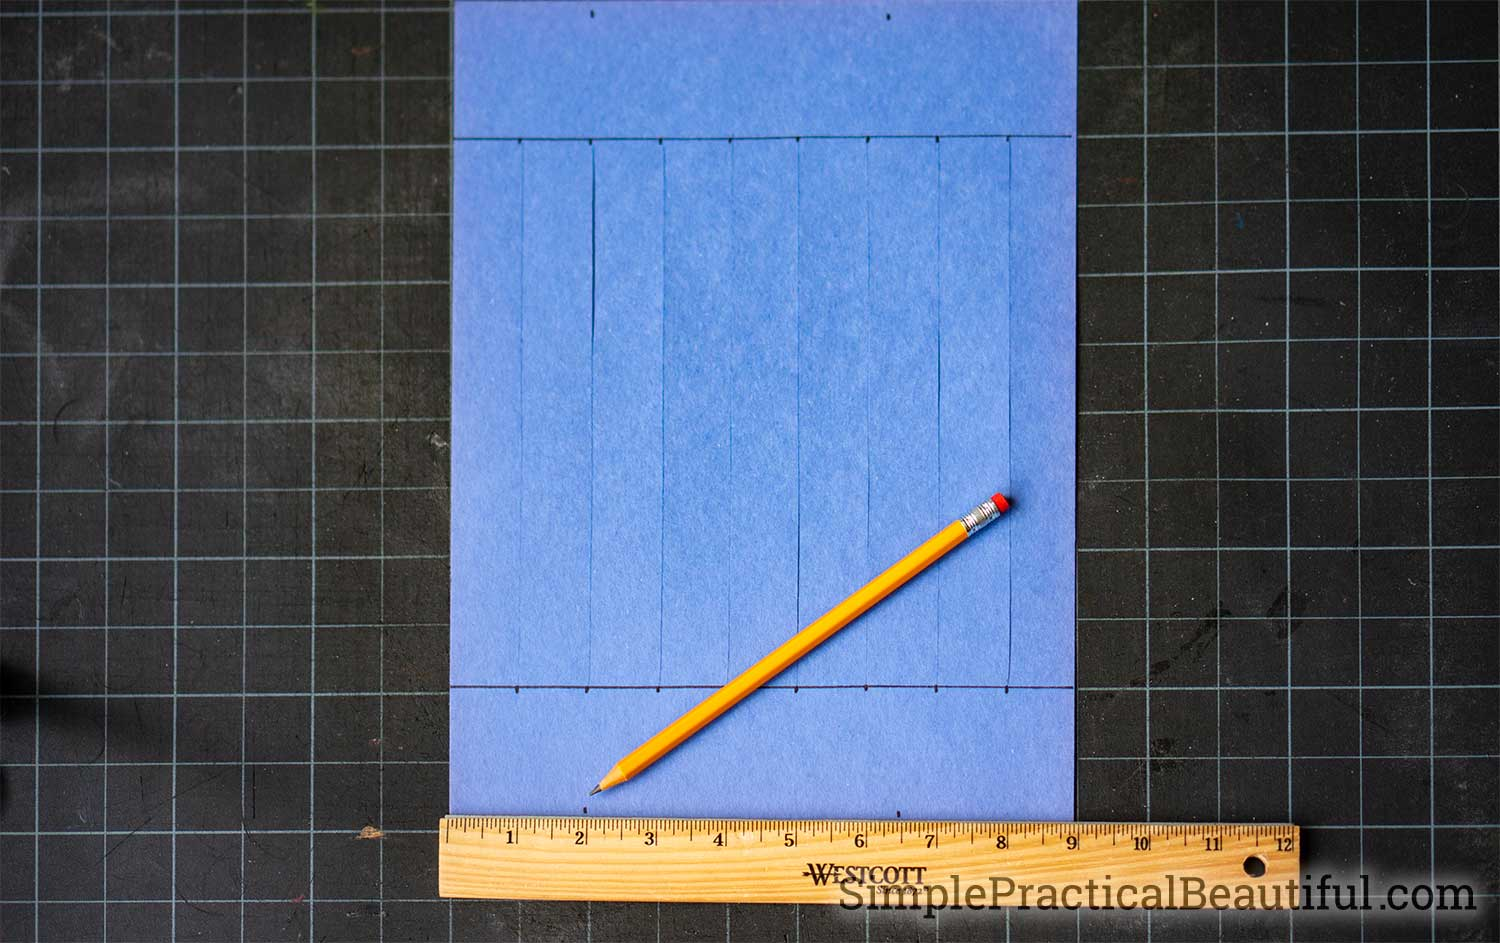 Measure and mark the construction paper accurately to make a lantern that doesn't end up lopsided